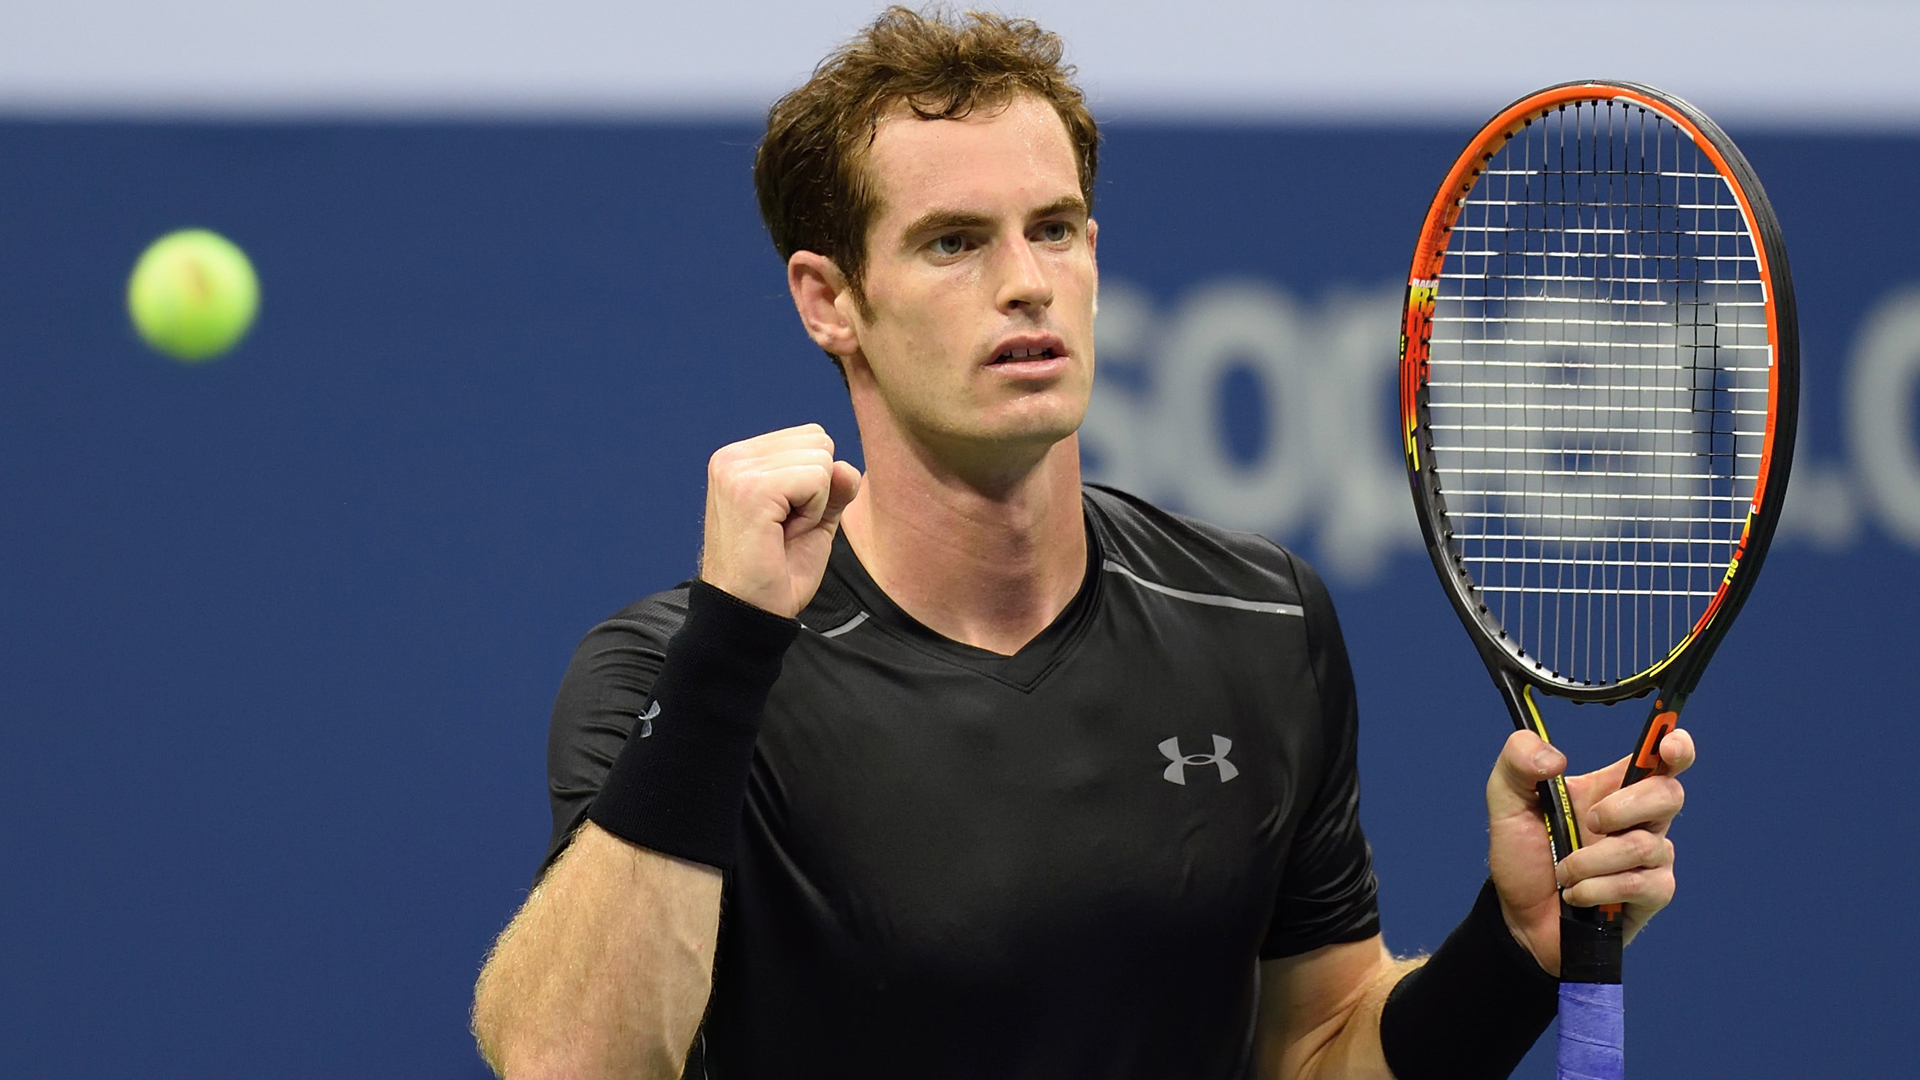 andy murray - photo #2